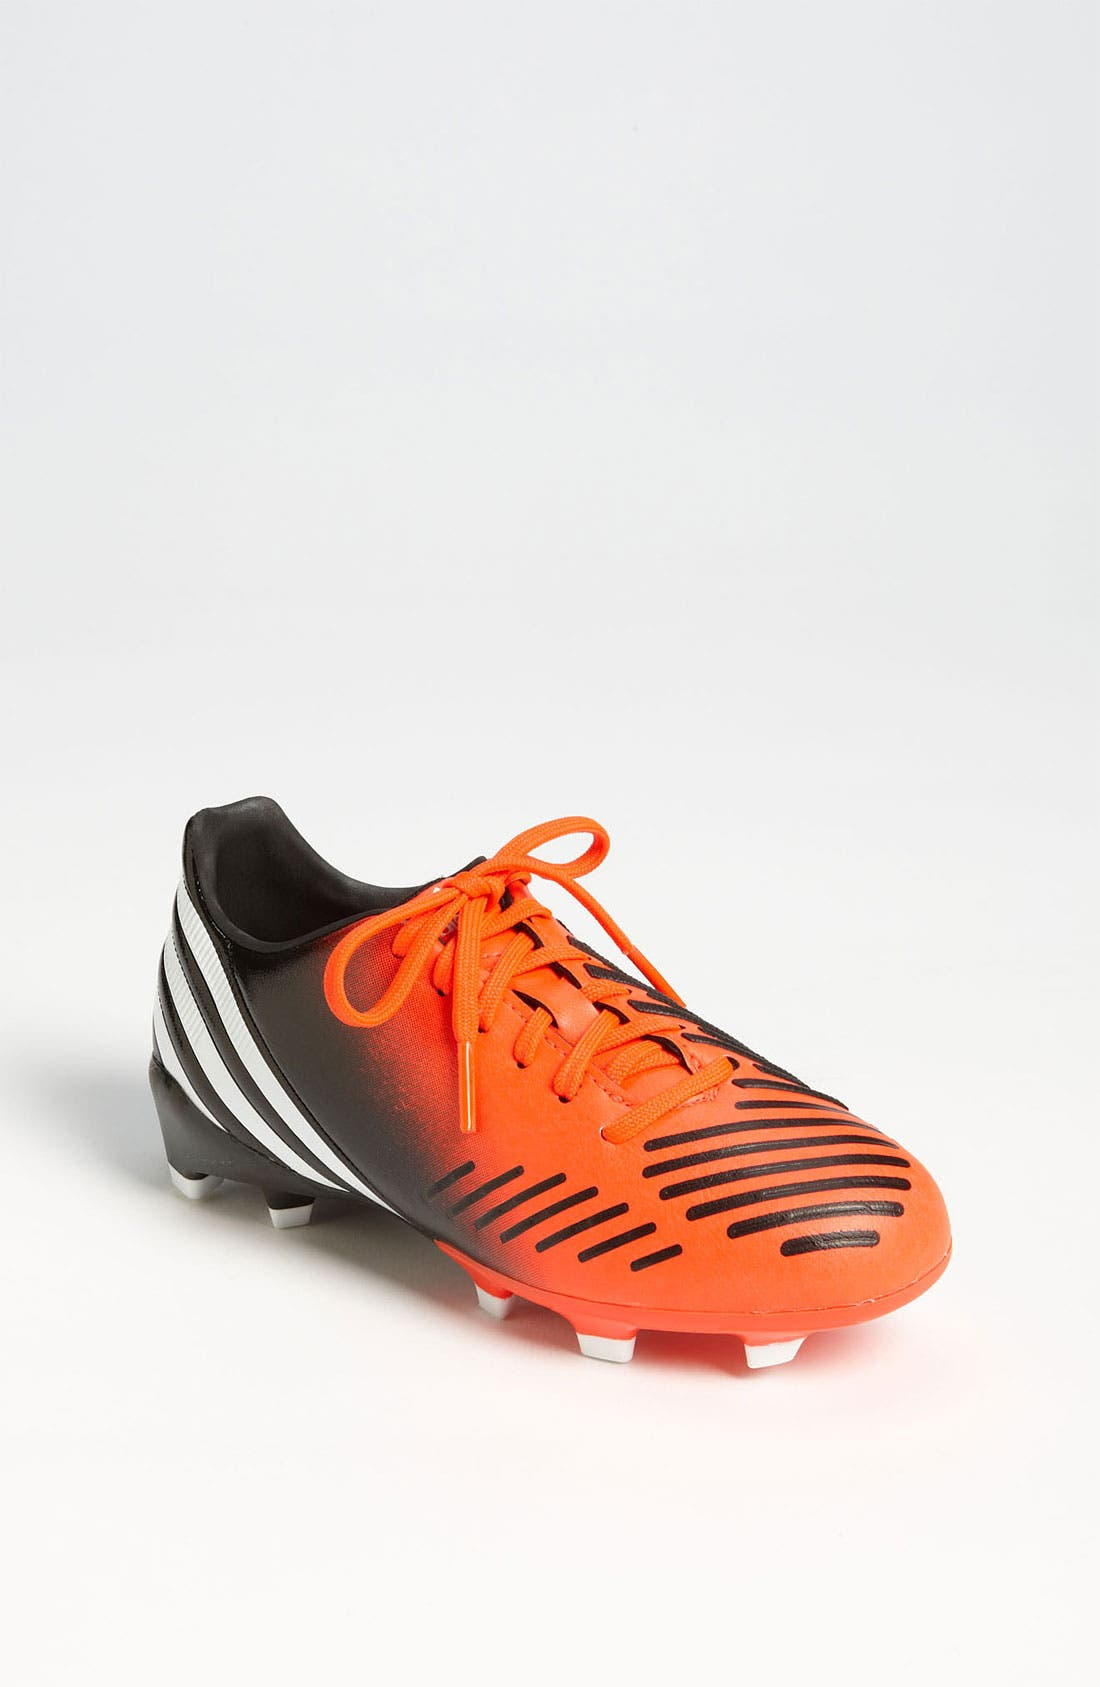 Main Image - adidas 'Predator Absolado LX TRX FG' Soccer Cleats (Toddler, Little Kid & Big Kid)